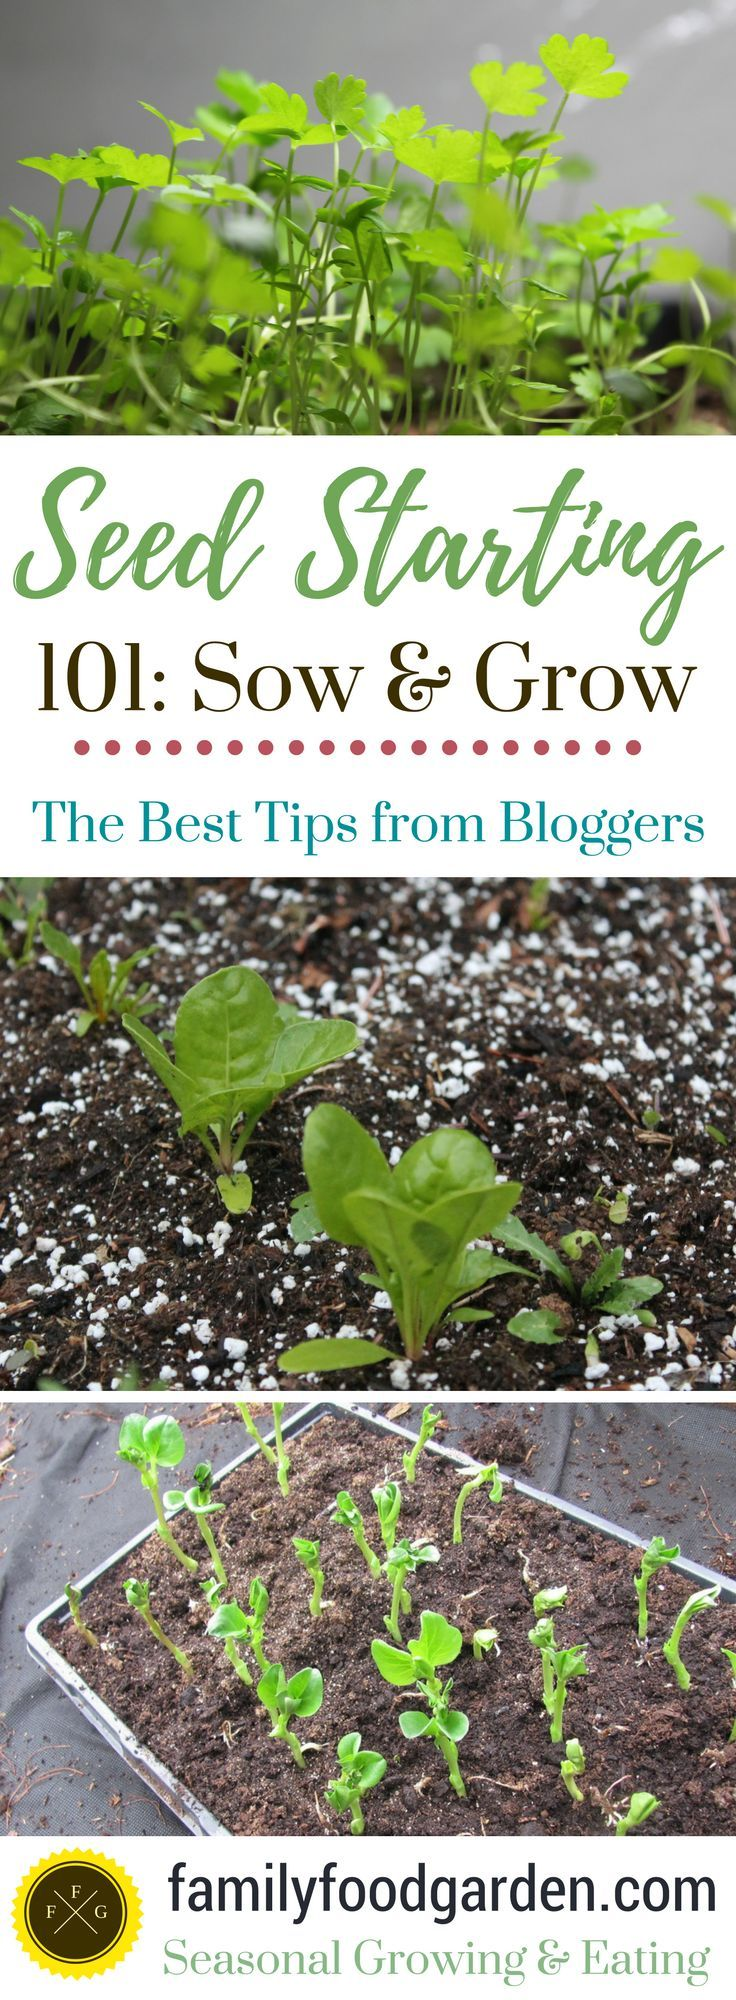 Seed Starting 101: Direct Sowing, Transplants, Tips & More